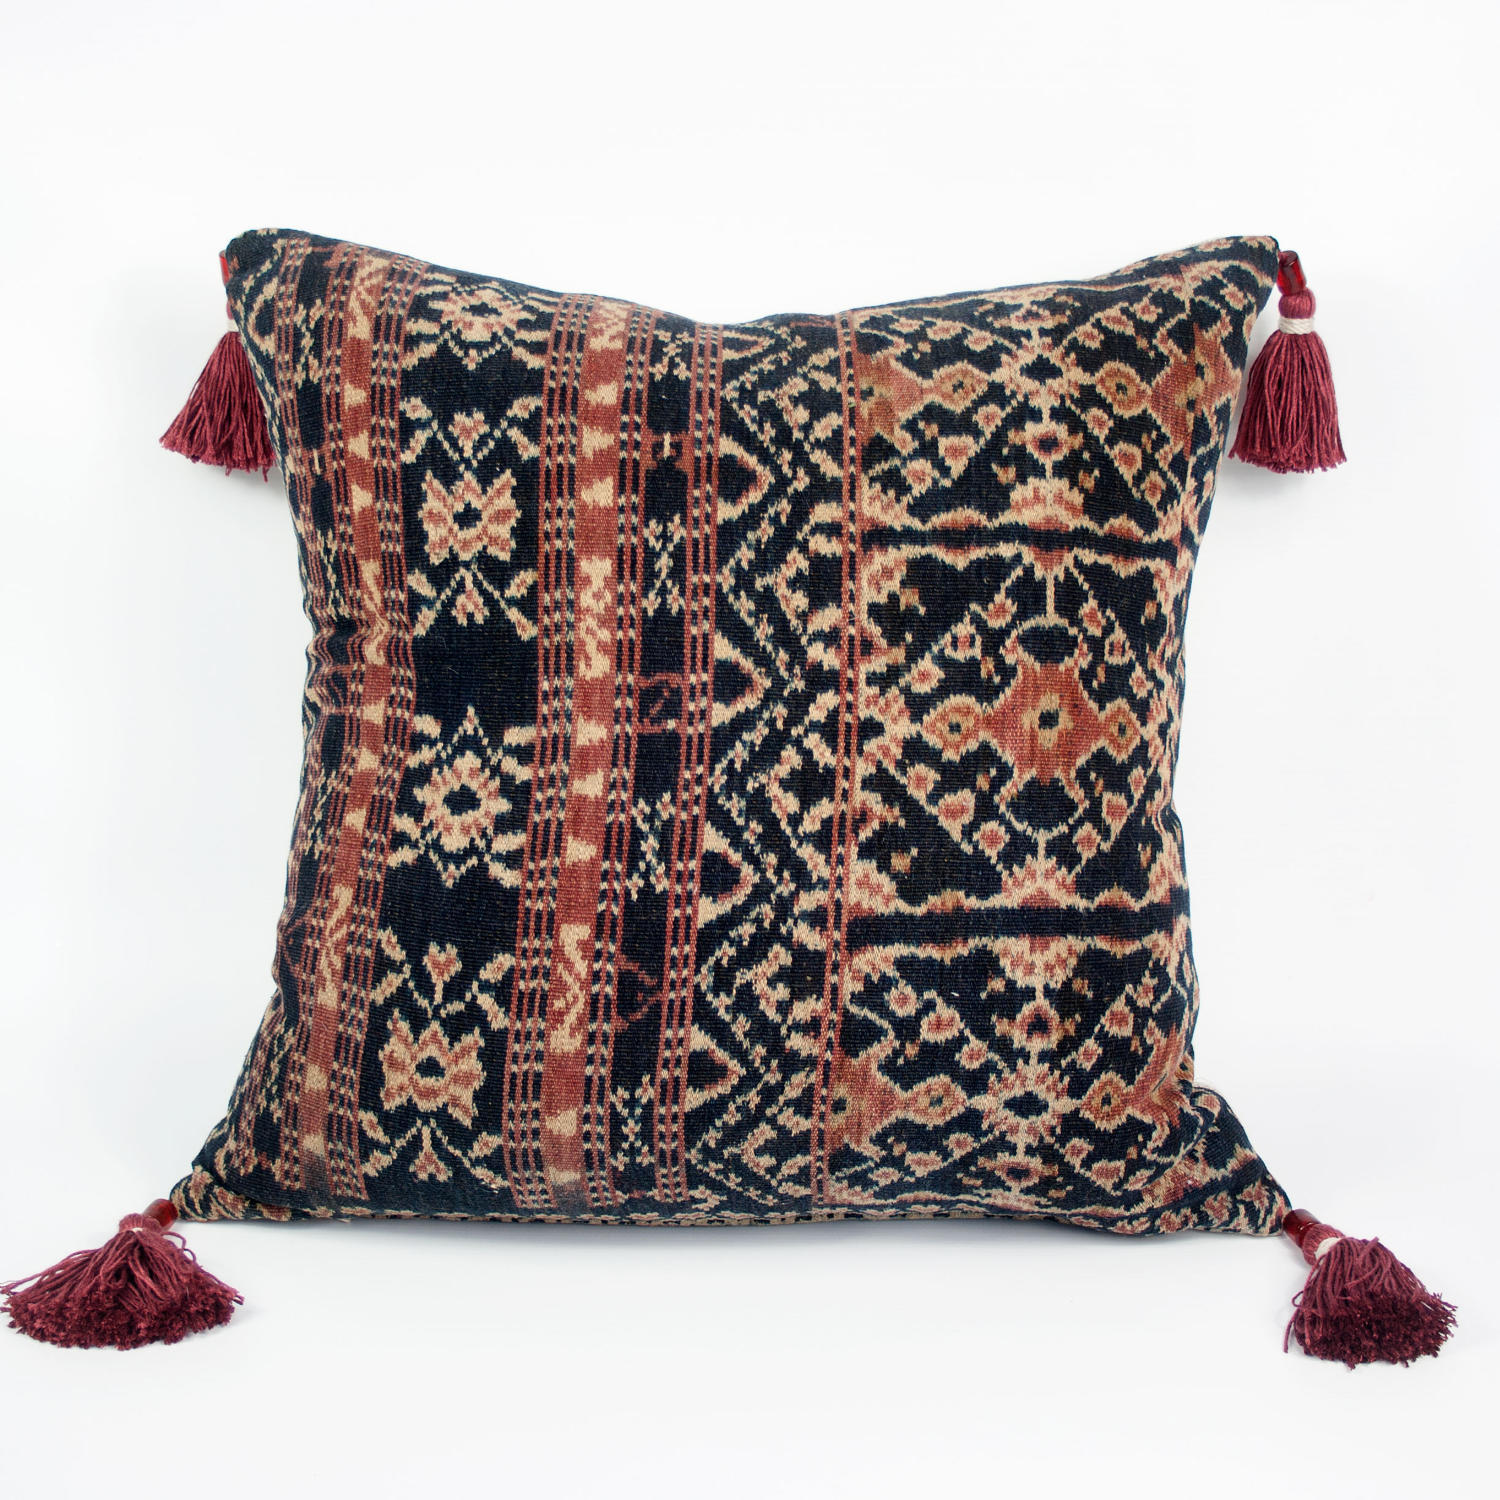 Ikat Cushions with Beaded Tassels